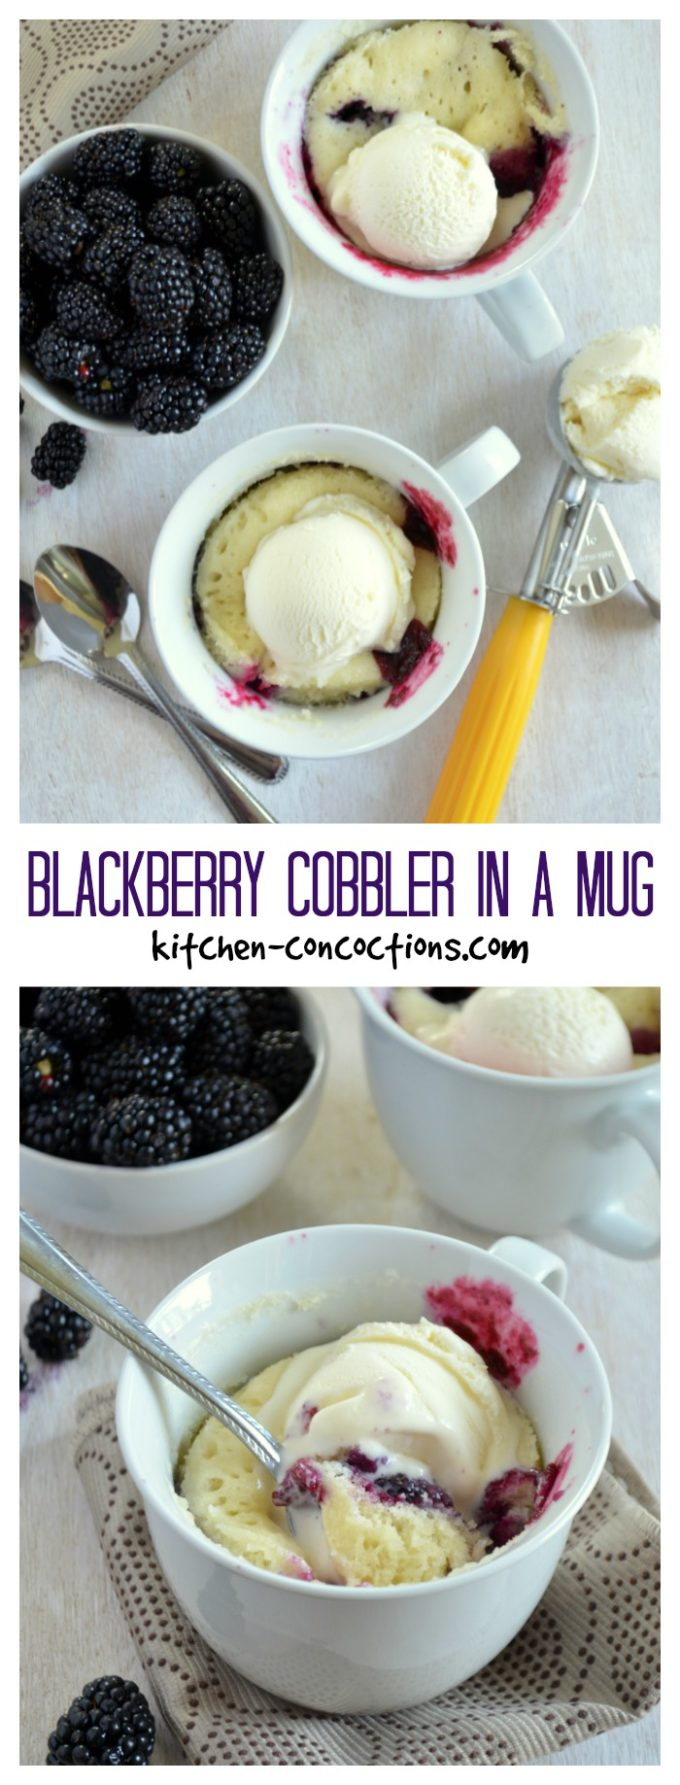 Blackberry Cobbler in a Mug